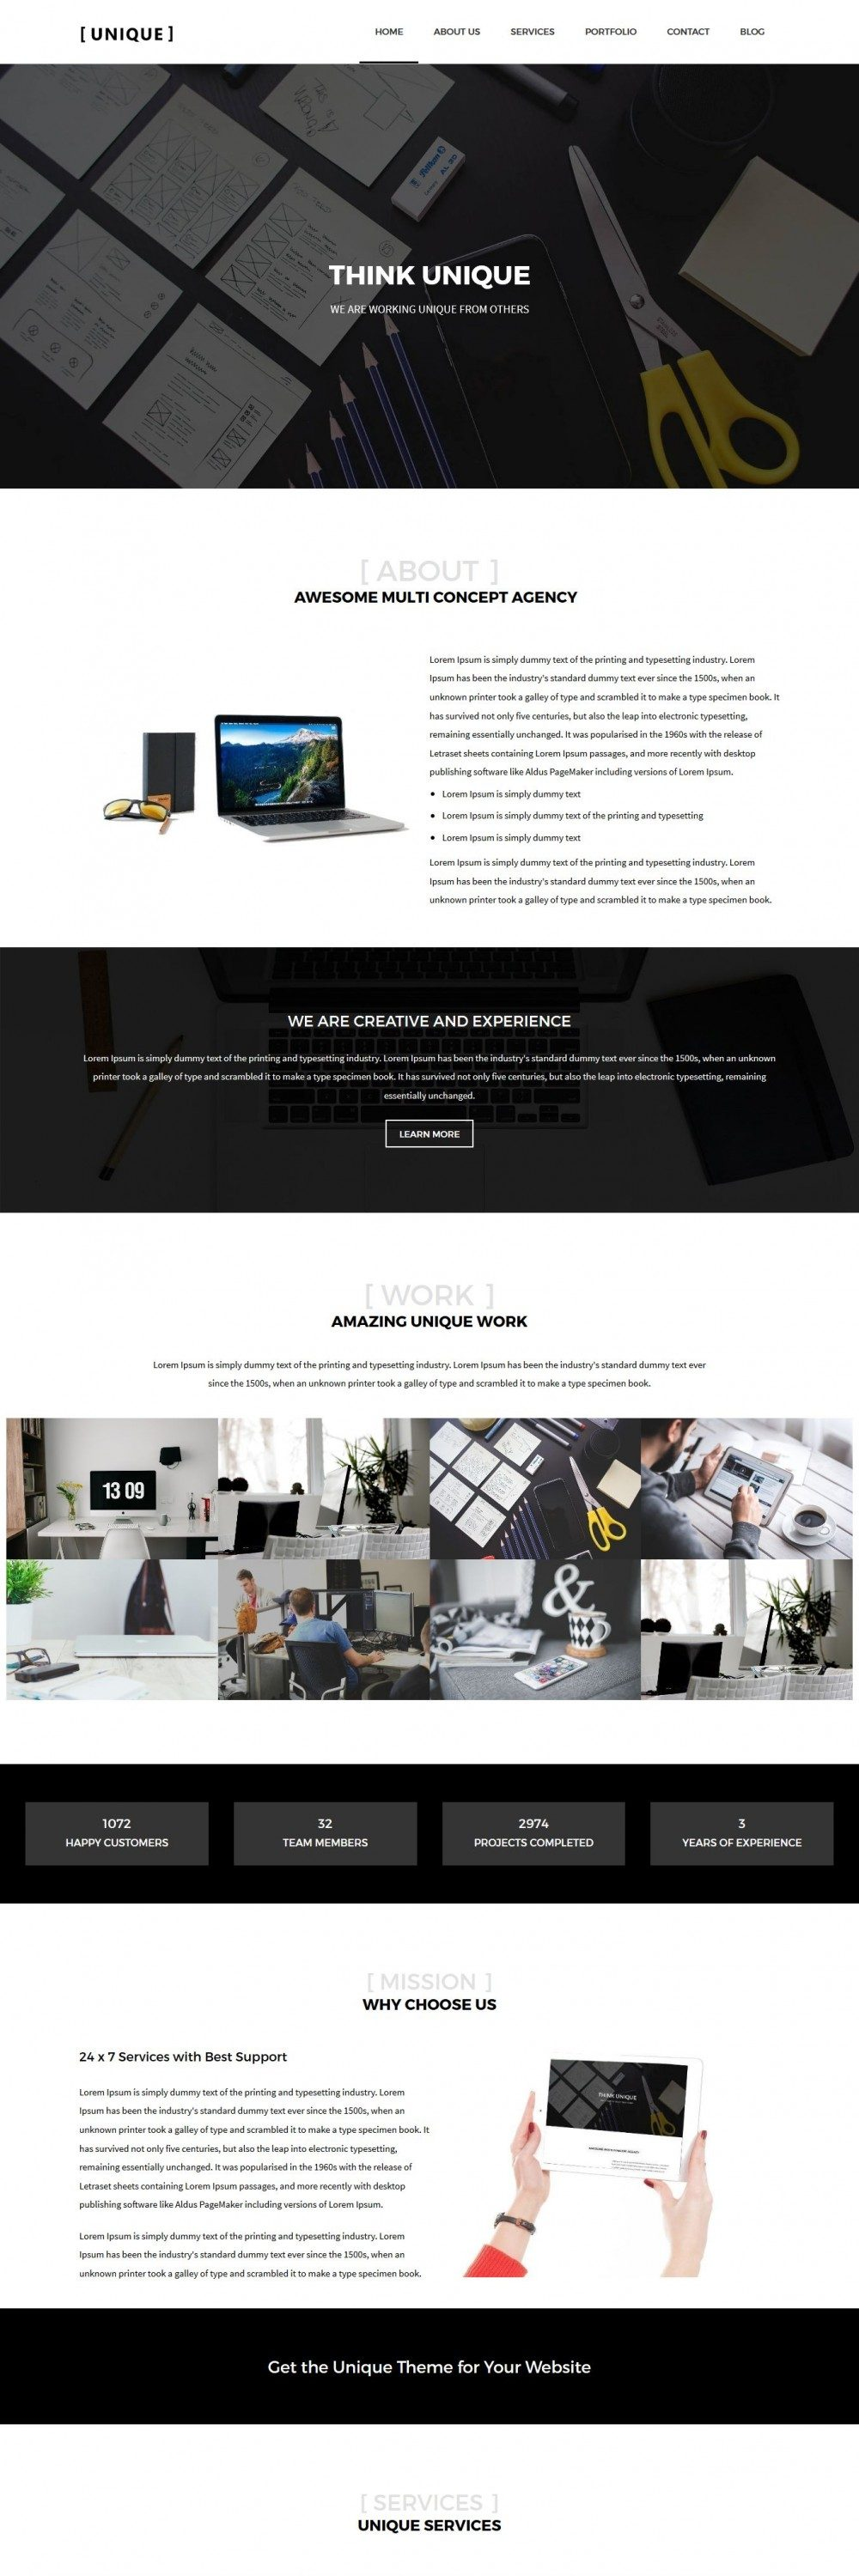 Unique - WordPress Theme for Web Design Agency